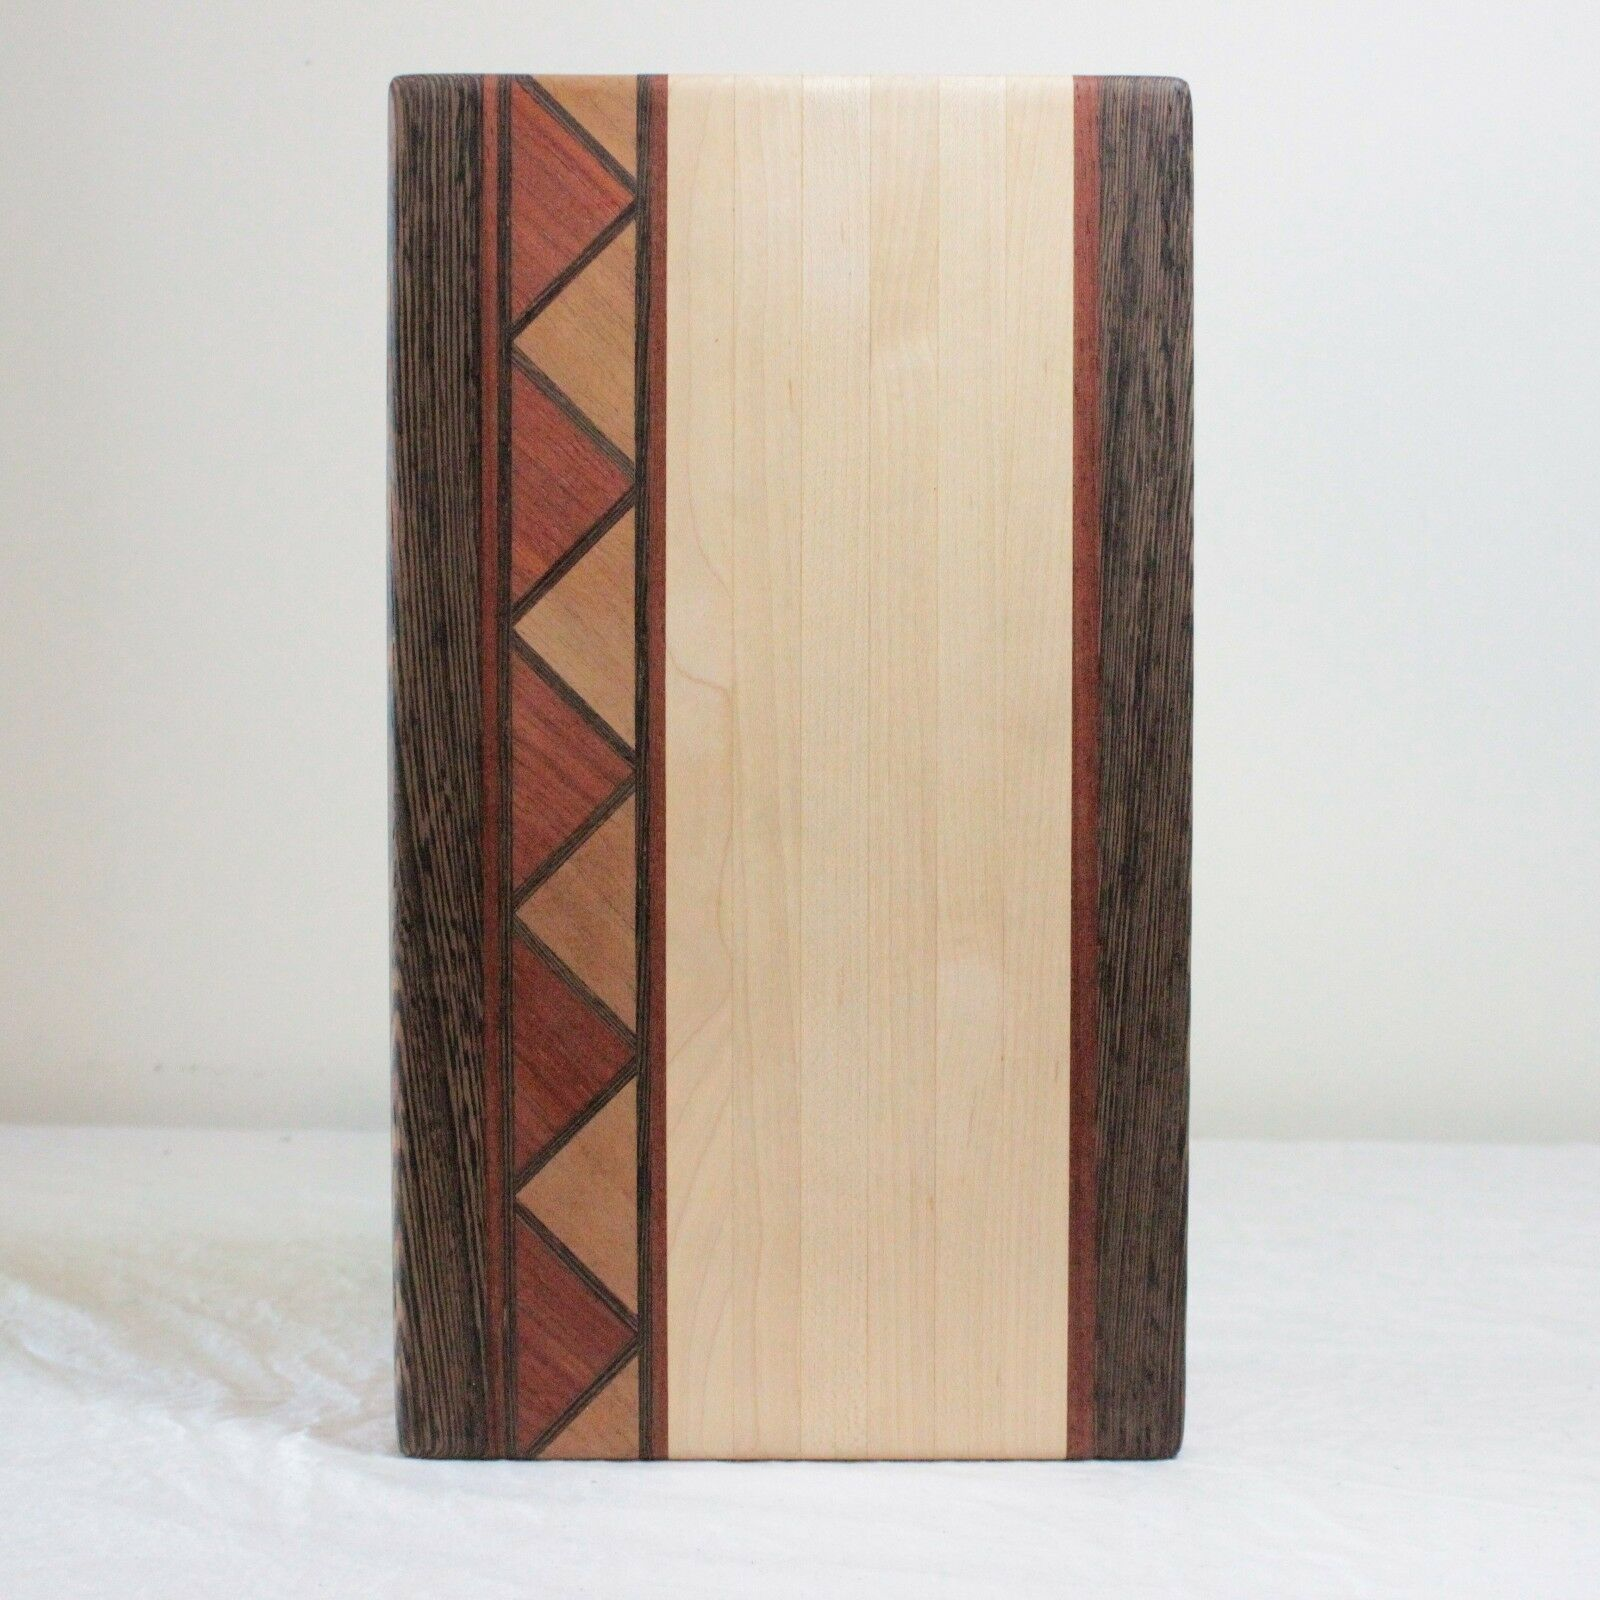 Handmade Wood Cutting Board Segmented C. Daugherty 2011 Aztec Tribal 13  x 7.5